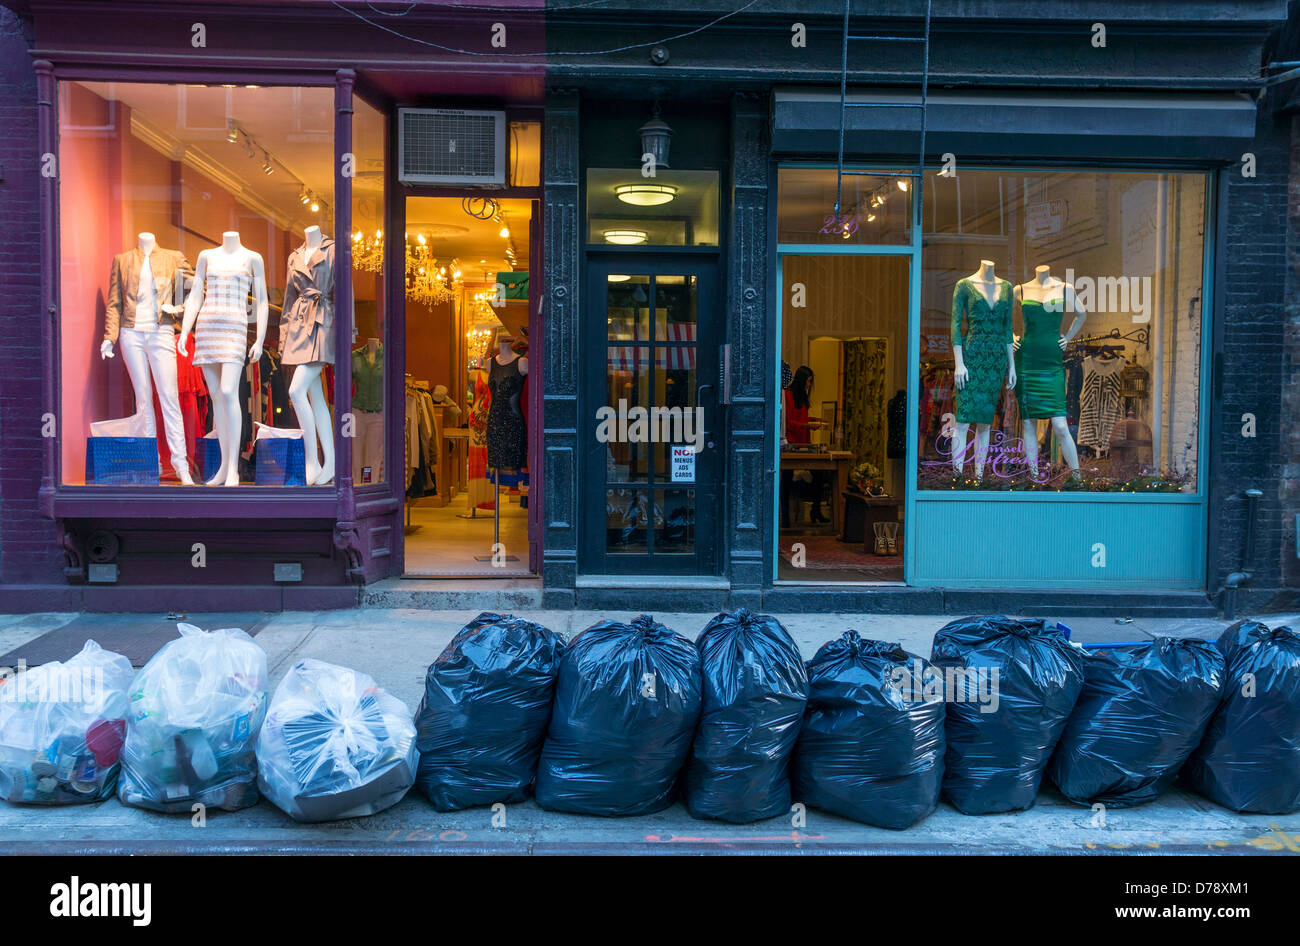 Two boutiques in Nolita with trash bags in front waiting to be collected, New York City - Stock Image